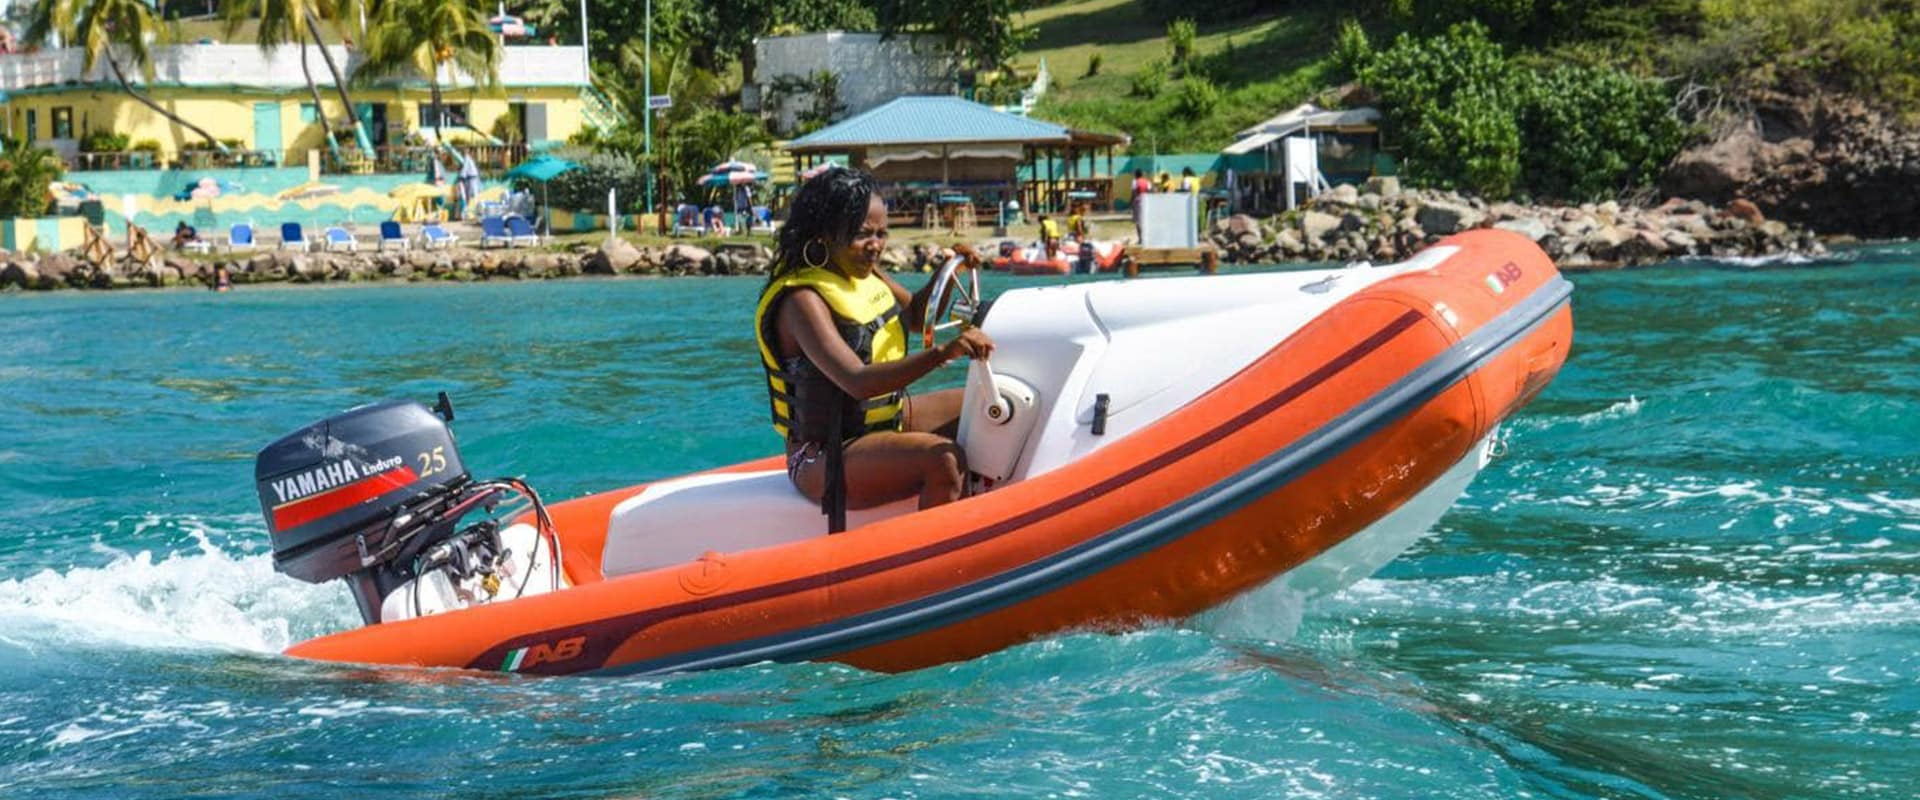 Mini Speed Boat Water Tour in St. Kitts